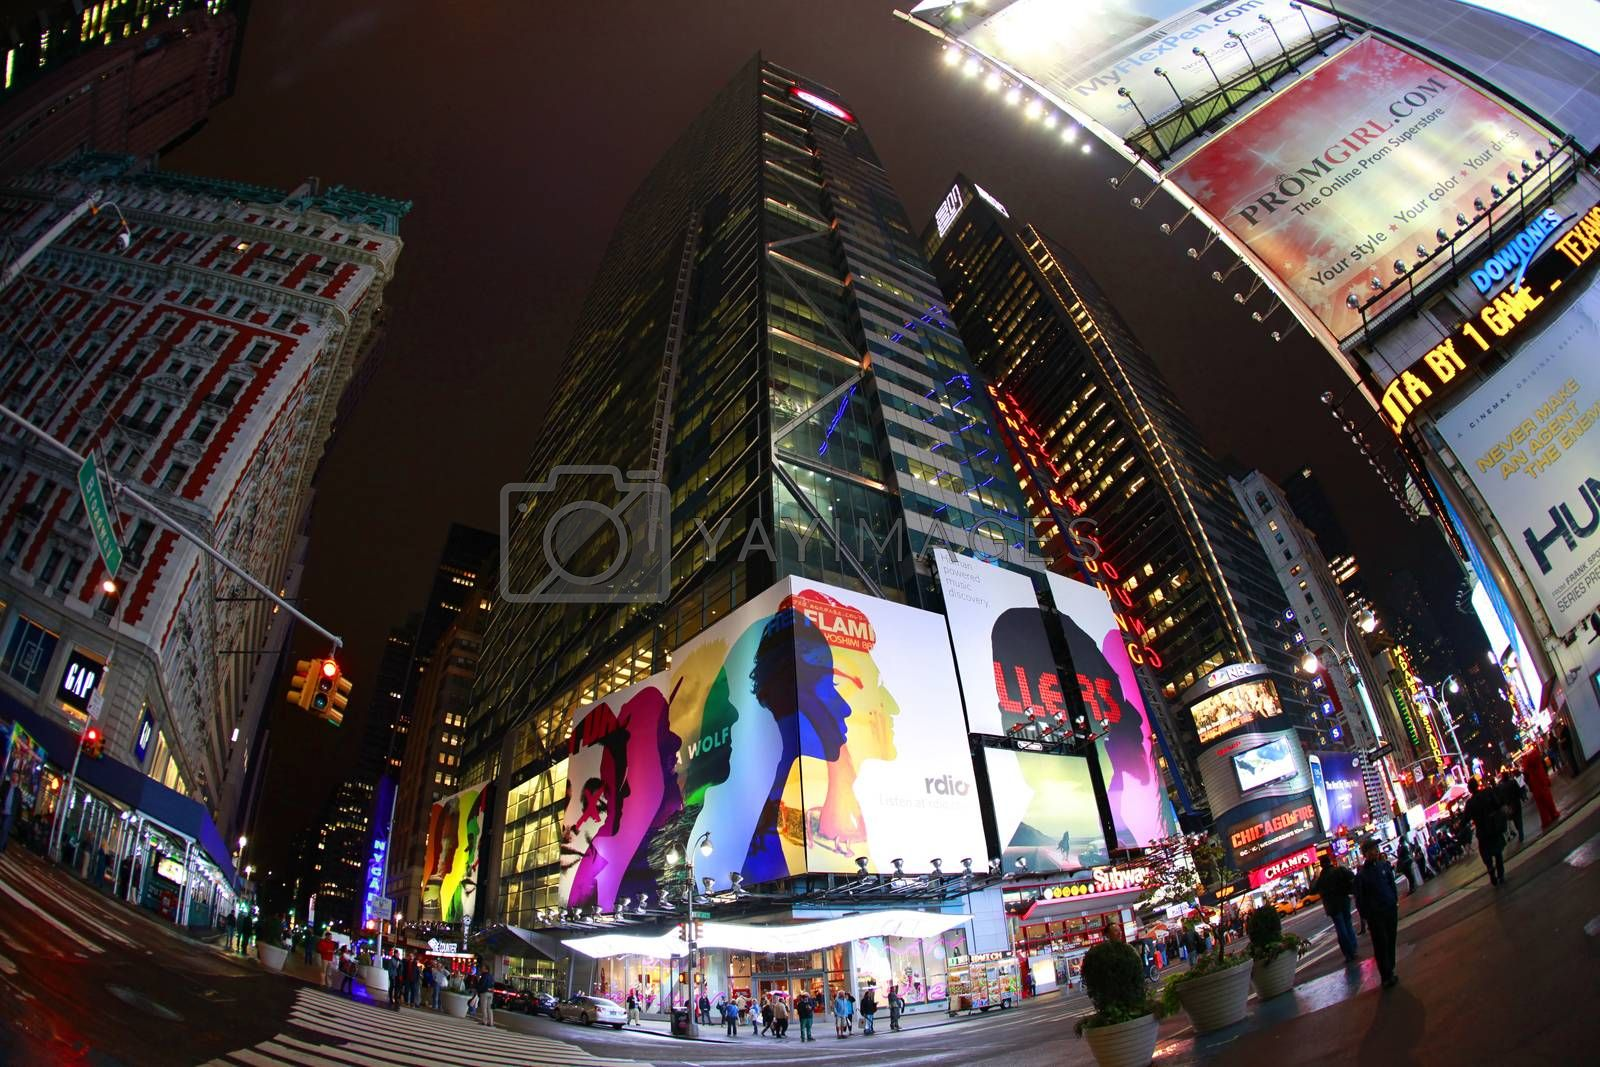 New York, USA - October 10, 2012: Times Square, featured with Broadway Theaters and huge number of LED signs, is a symbol of New York City and the United States, Manhattan, New York City